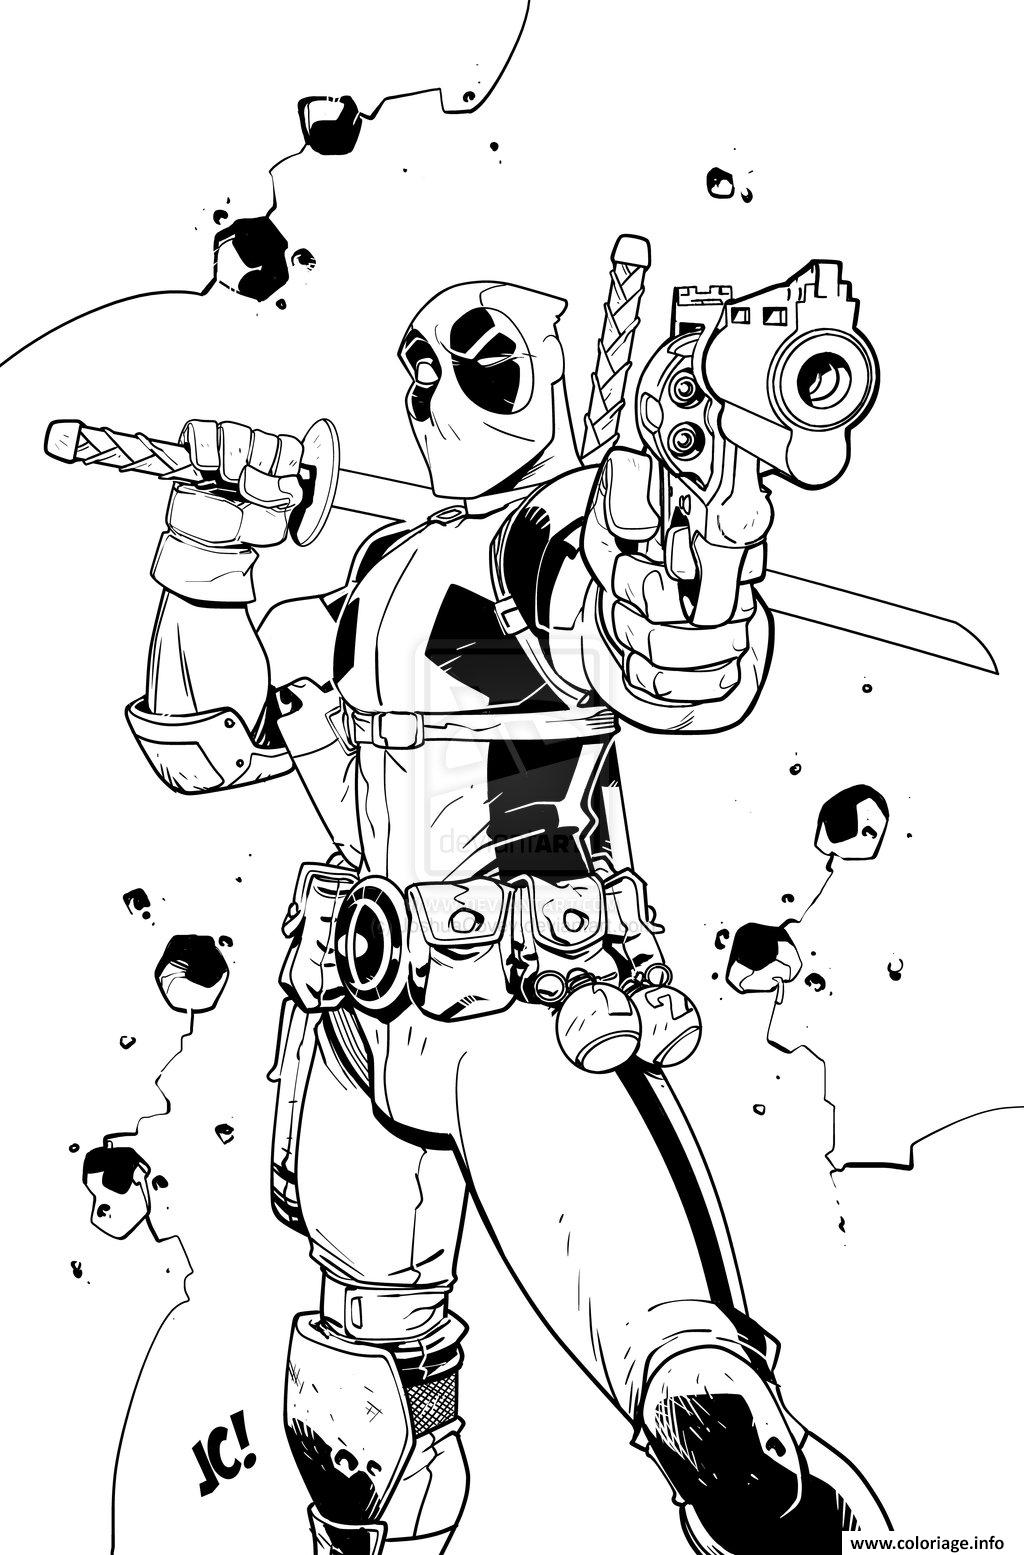 Coloriage deadpool 2 january 12 2018 movie dessin - Dessin deadpool ...